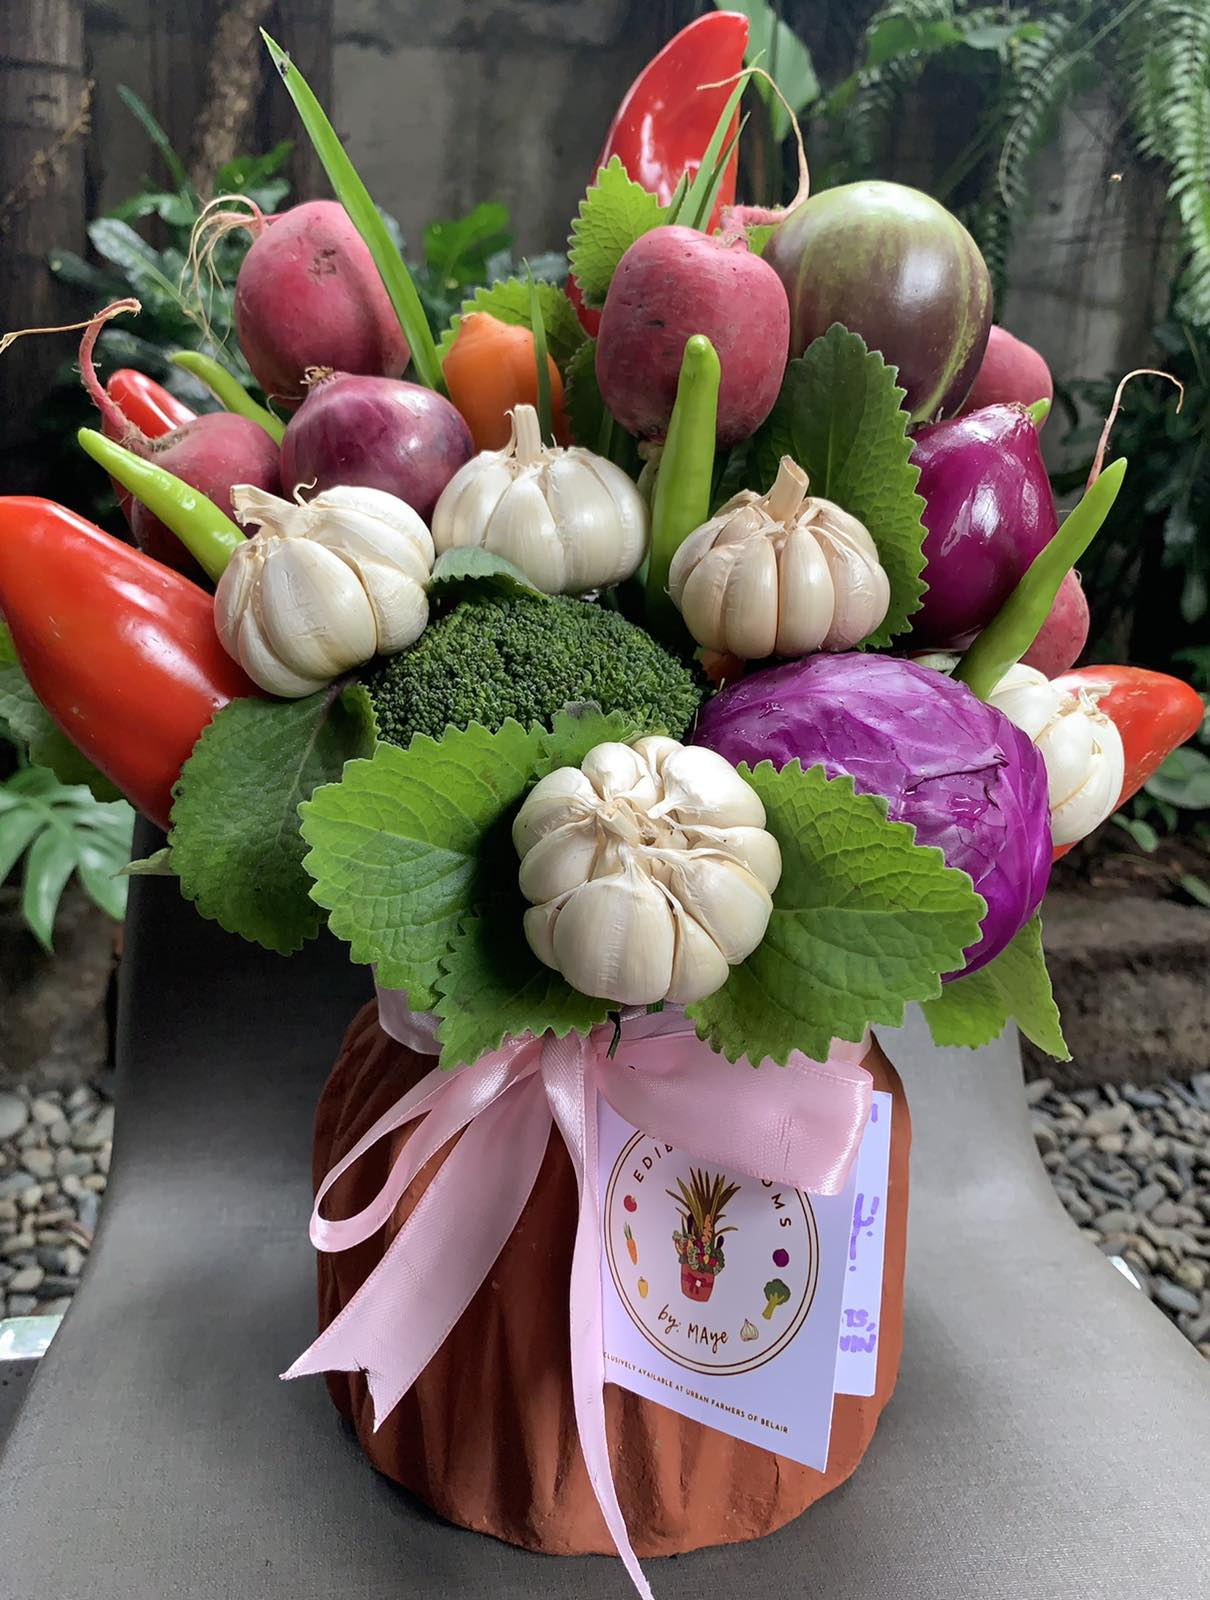 Garlic, bell pepper, onions, radish, broccoli, and chilies beautifully arranged in a terracotta pot.